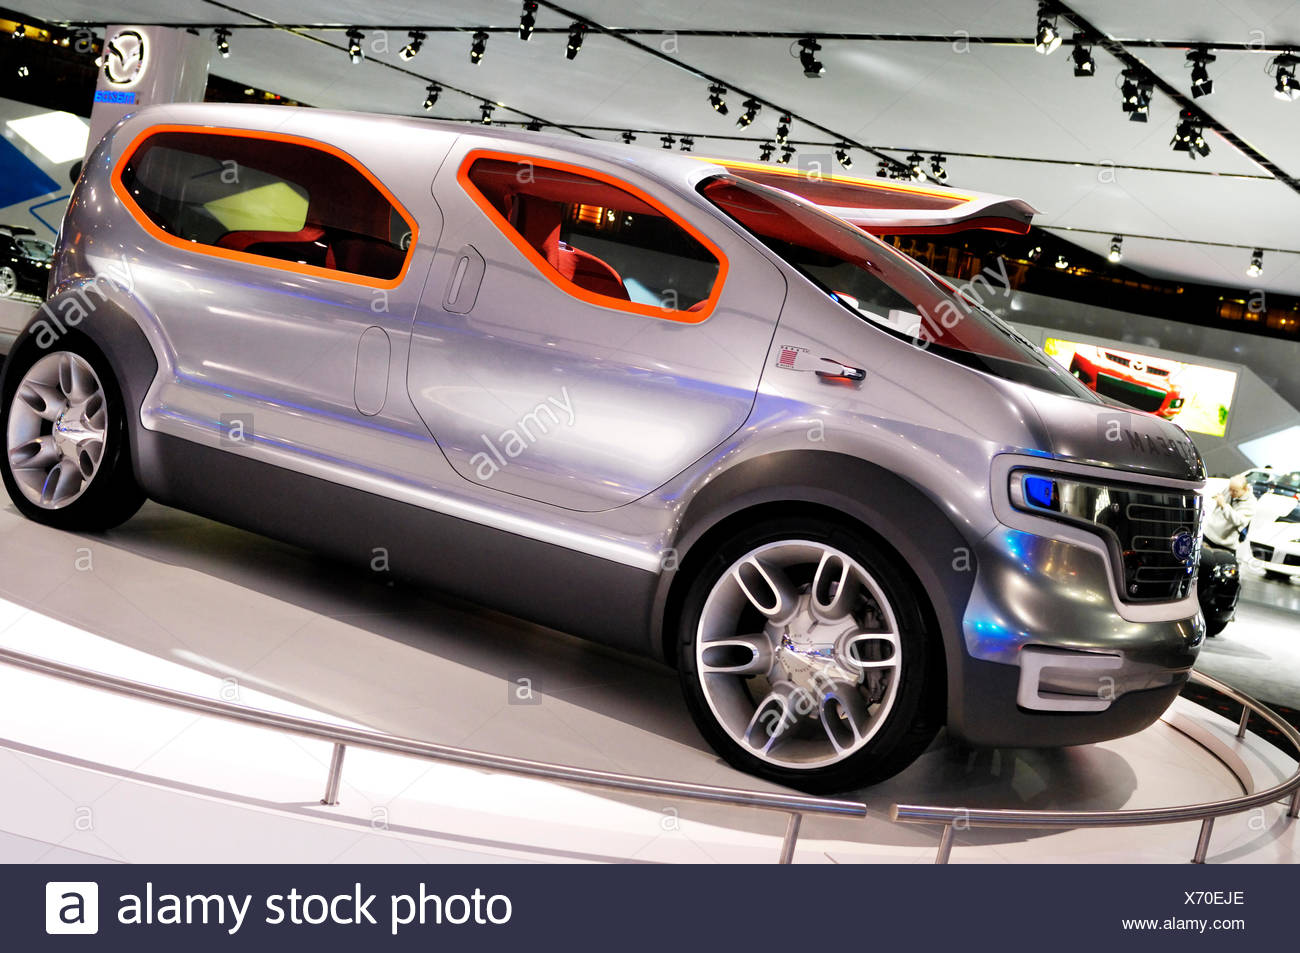 Ford Airstream concept car crossover futuriste, powered by HySeries Drive plug-in hybride hydrogène les piles à combustible Banque D'Images